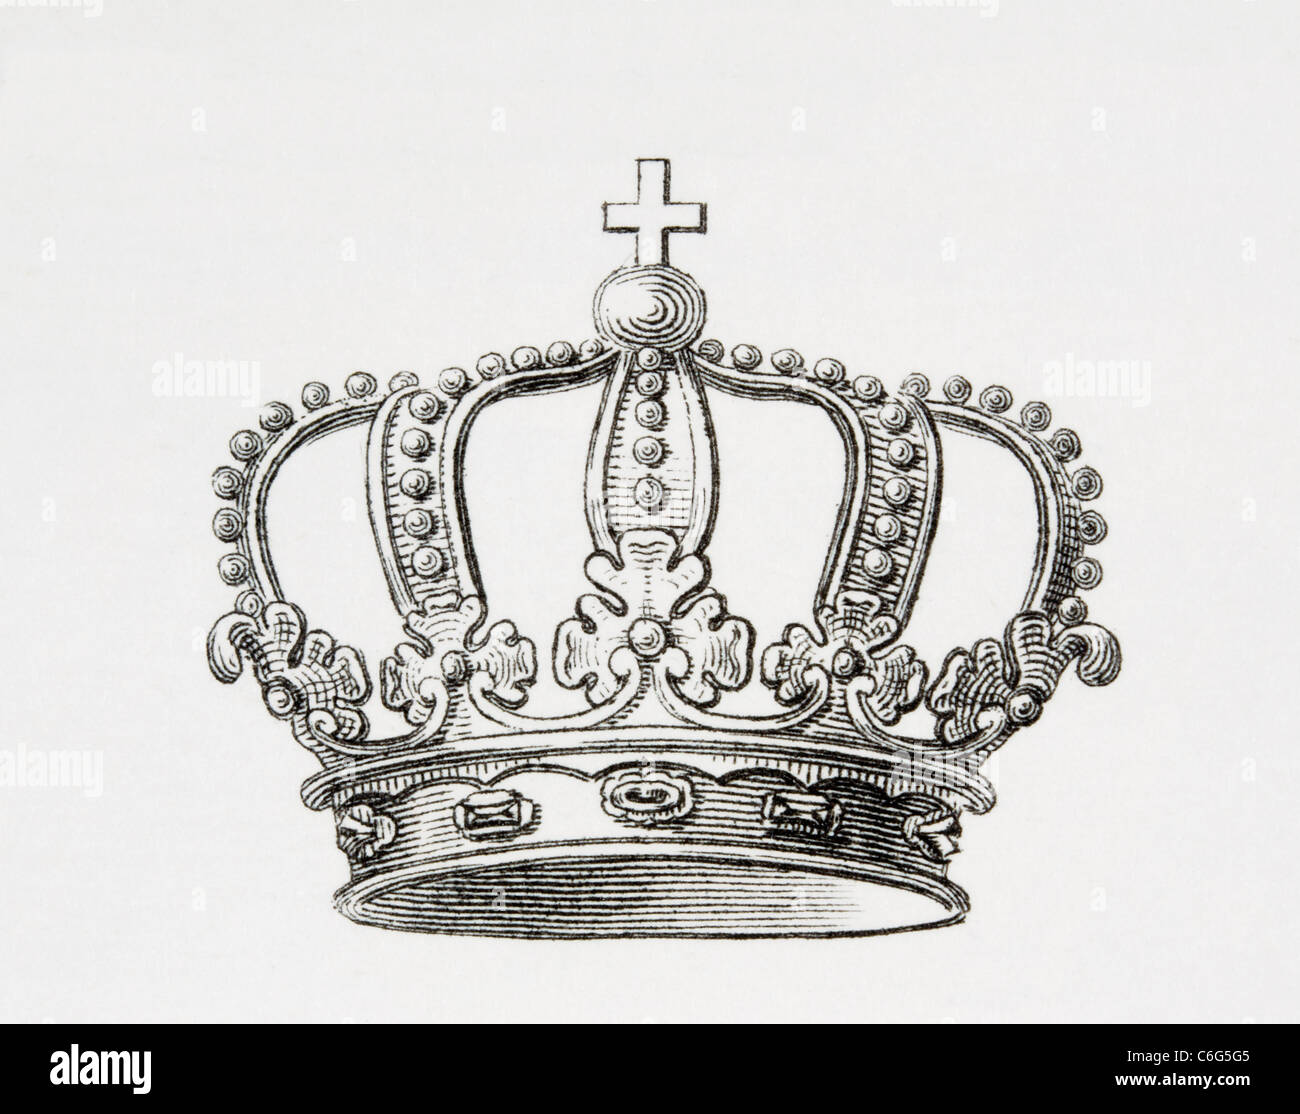 Crown of the Kingdom of Spain. - Stock Image